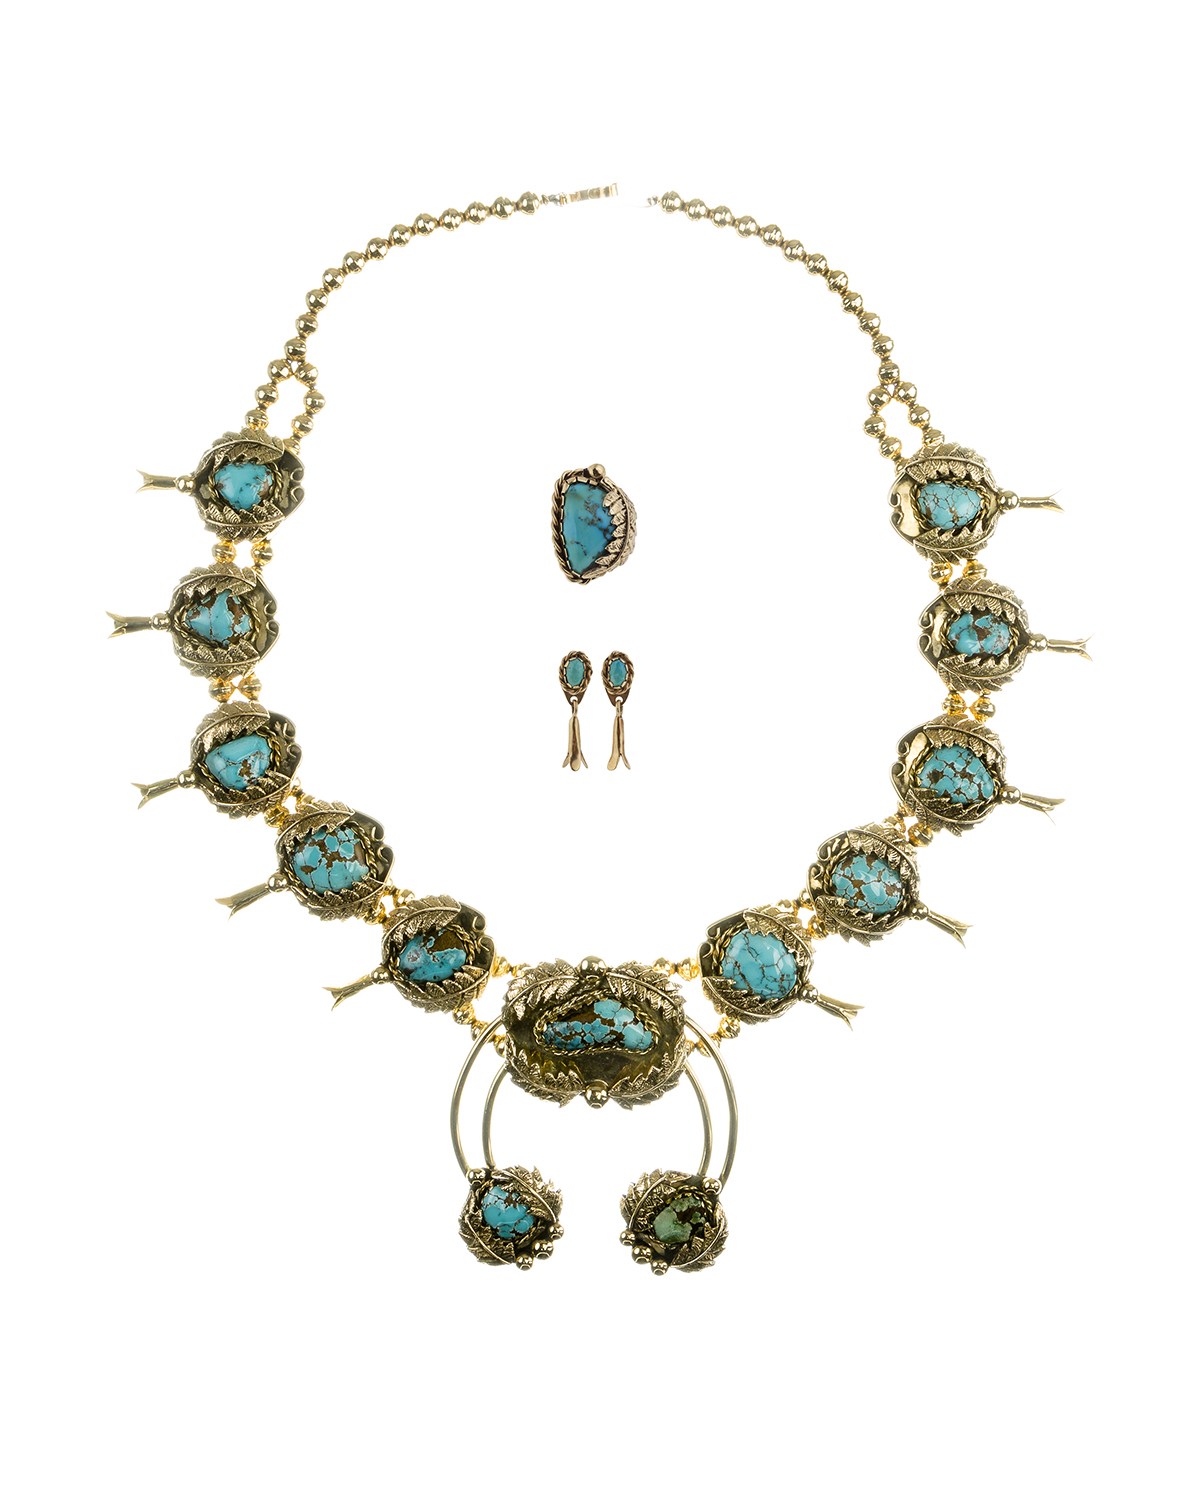 A Navajo-style gold and turquoise squash blossom suite